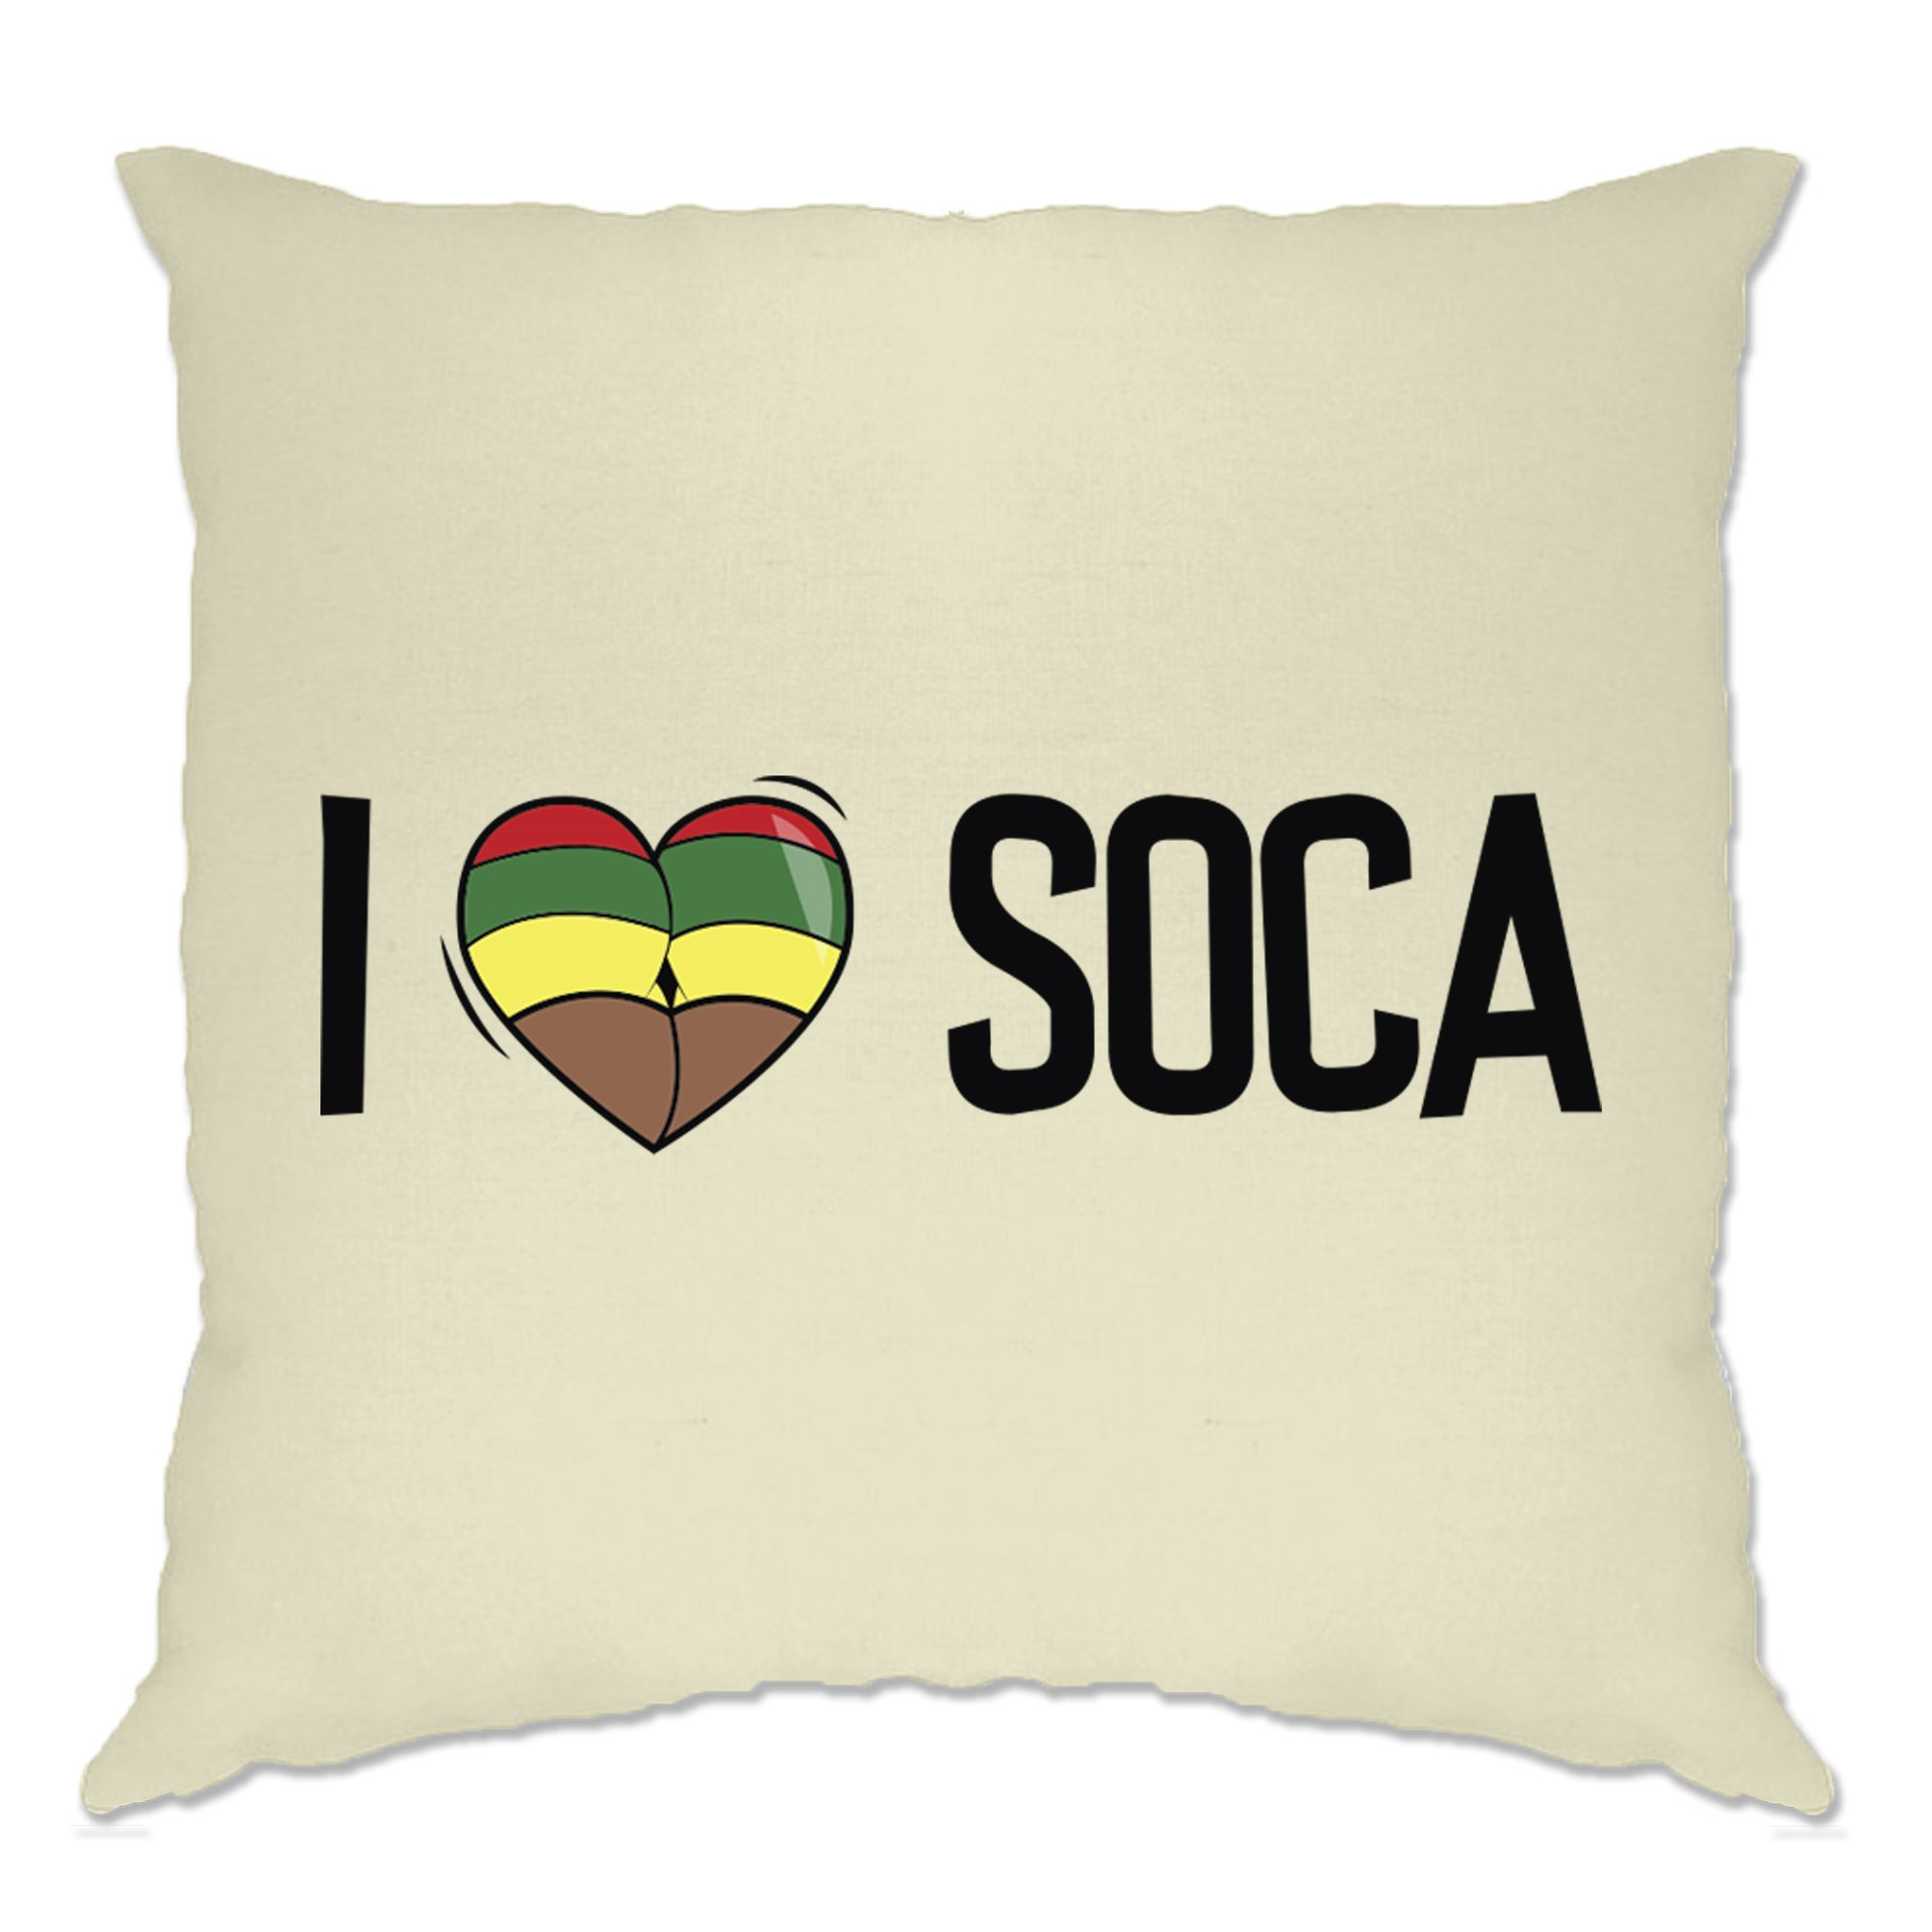 Music Cushion Cover I Love Soca Reggae Jamaica Dub Carnival Festival Carribean Ebay